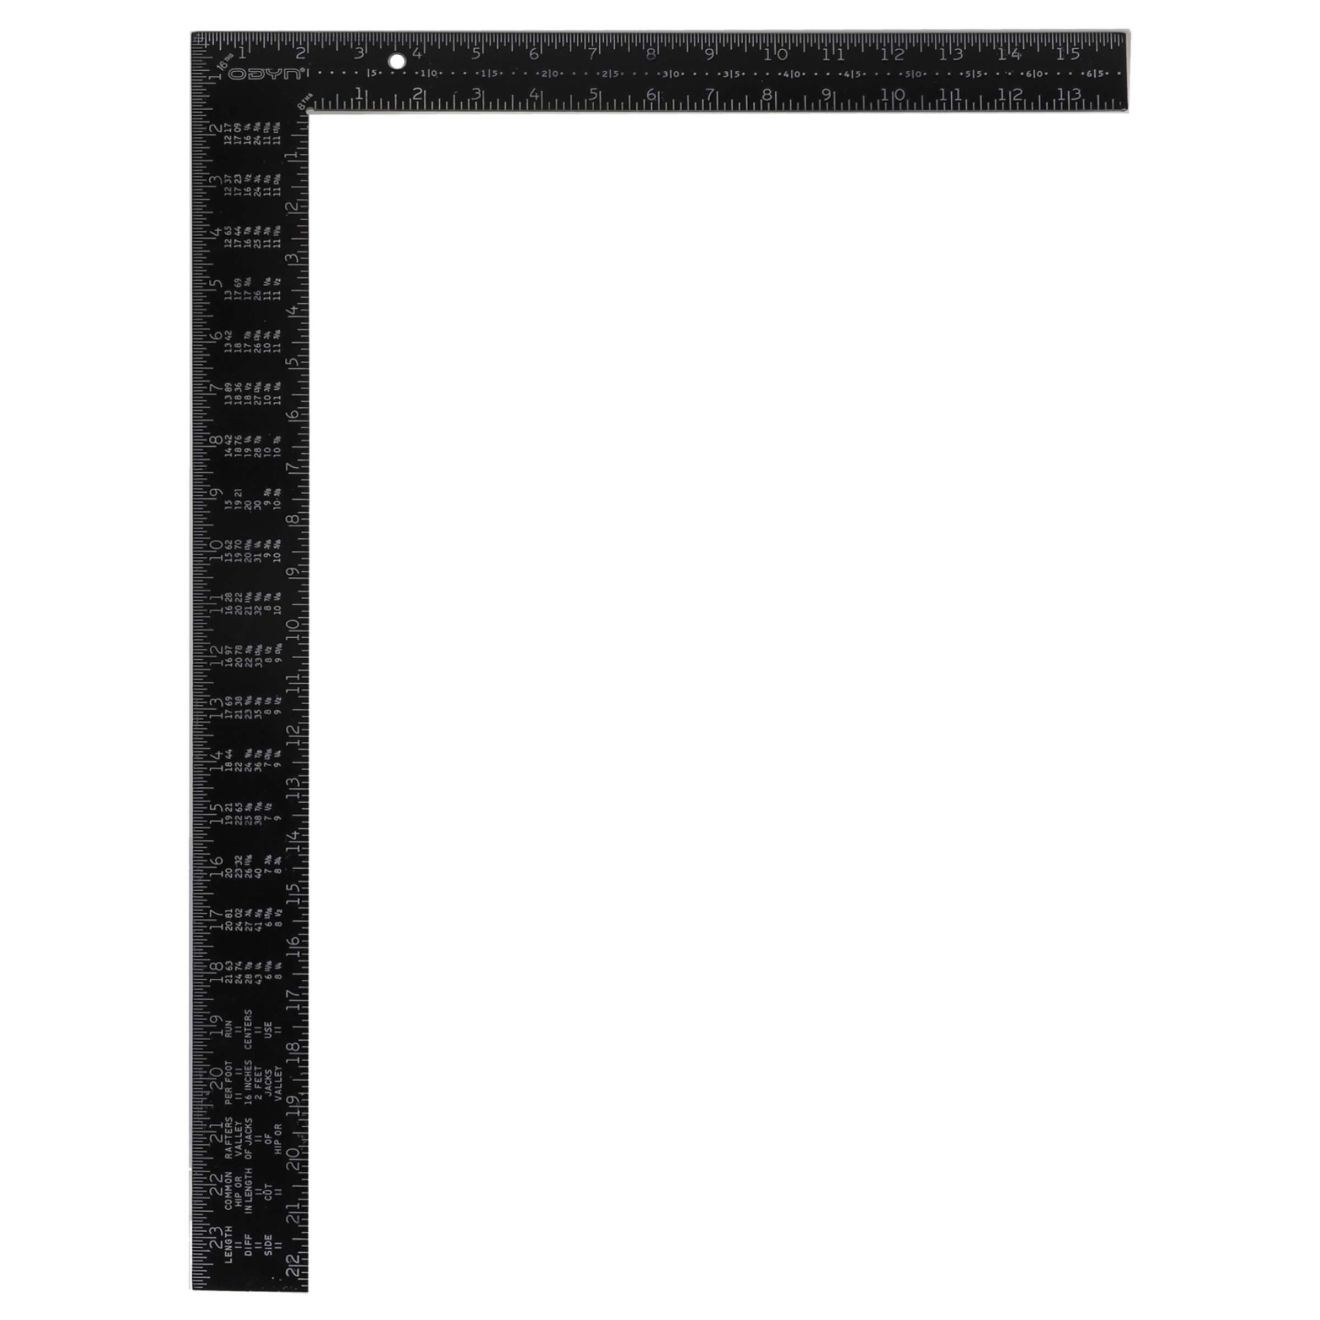 Odyn 16 in. x 24 in. Aluminum Framing Square-